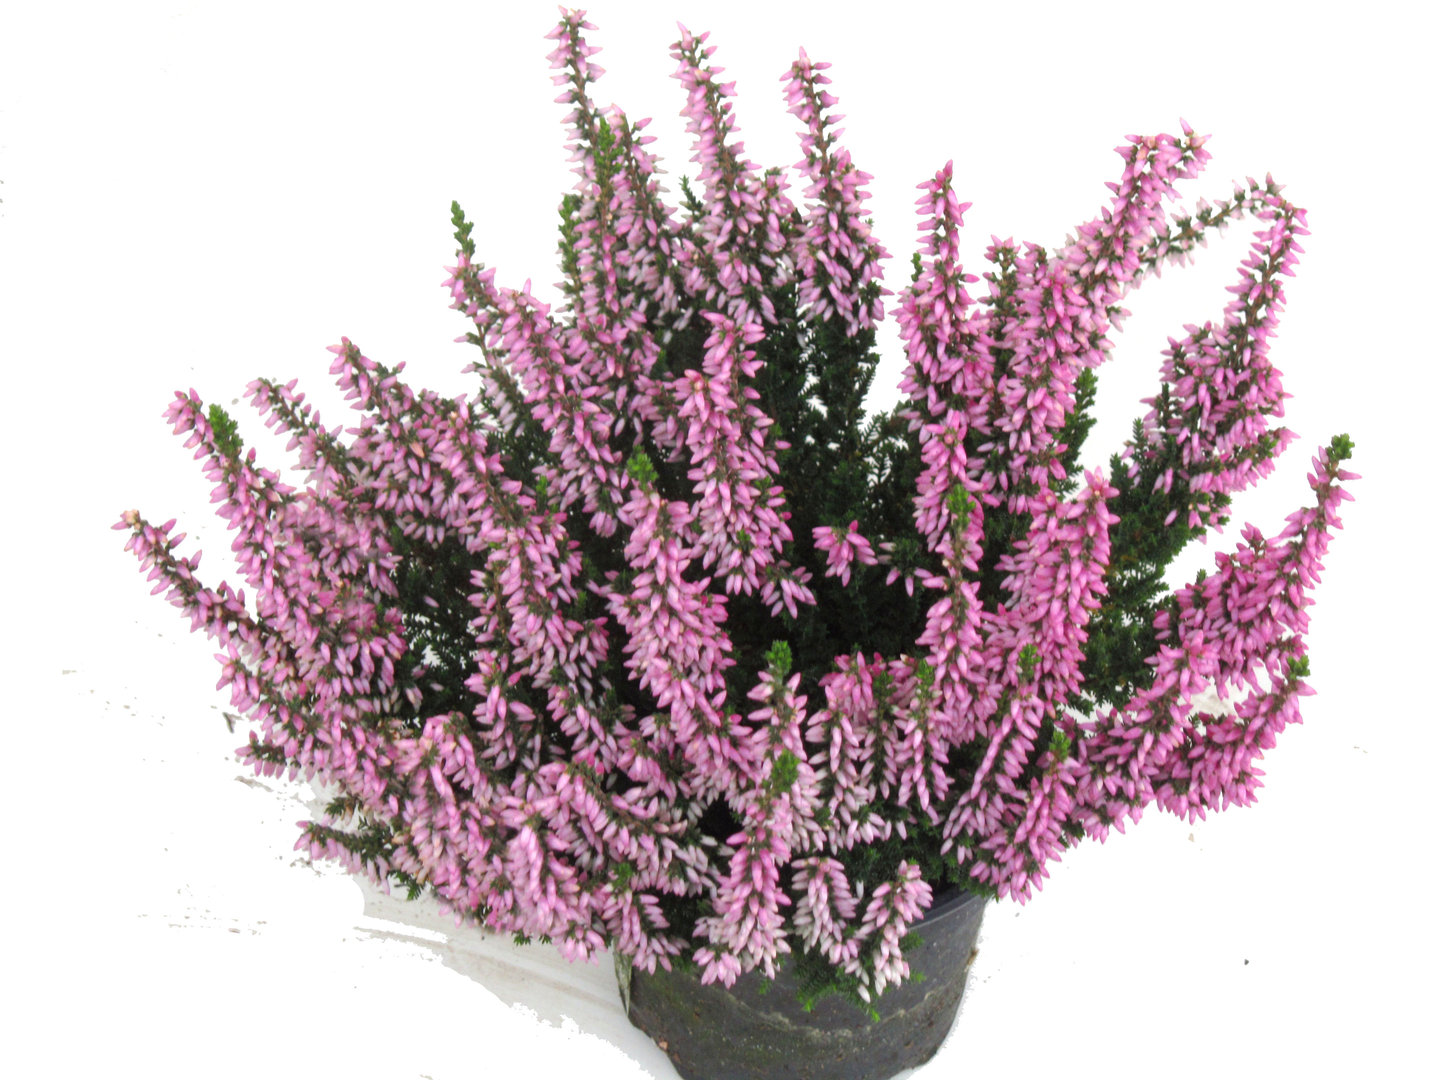 calluna vulgaris besenheide heidekraut rosa 10 cm topf pflanzen versand harro 39 s. Black Bedroom Furniture Sets. Home Design Ideas